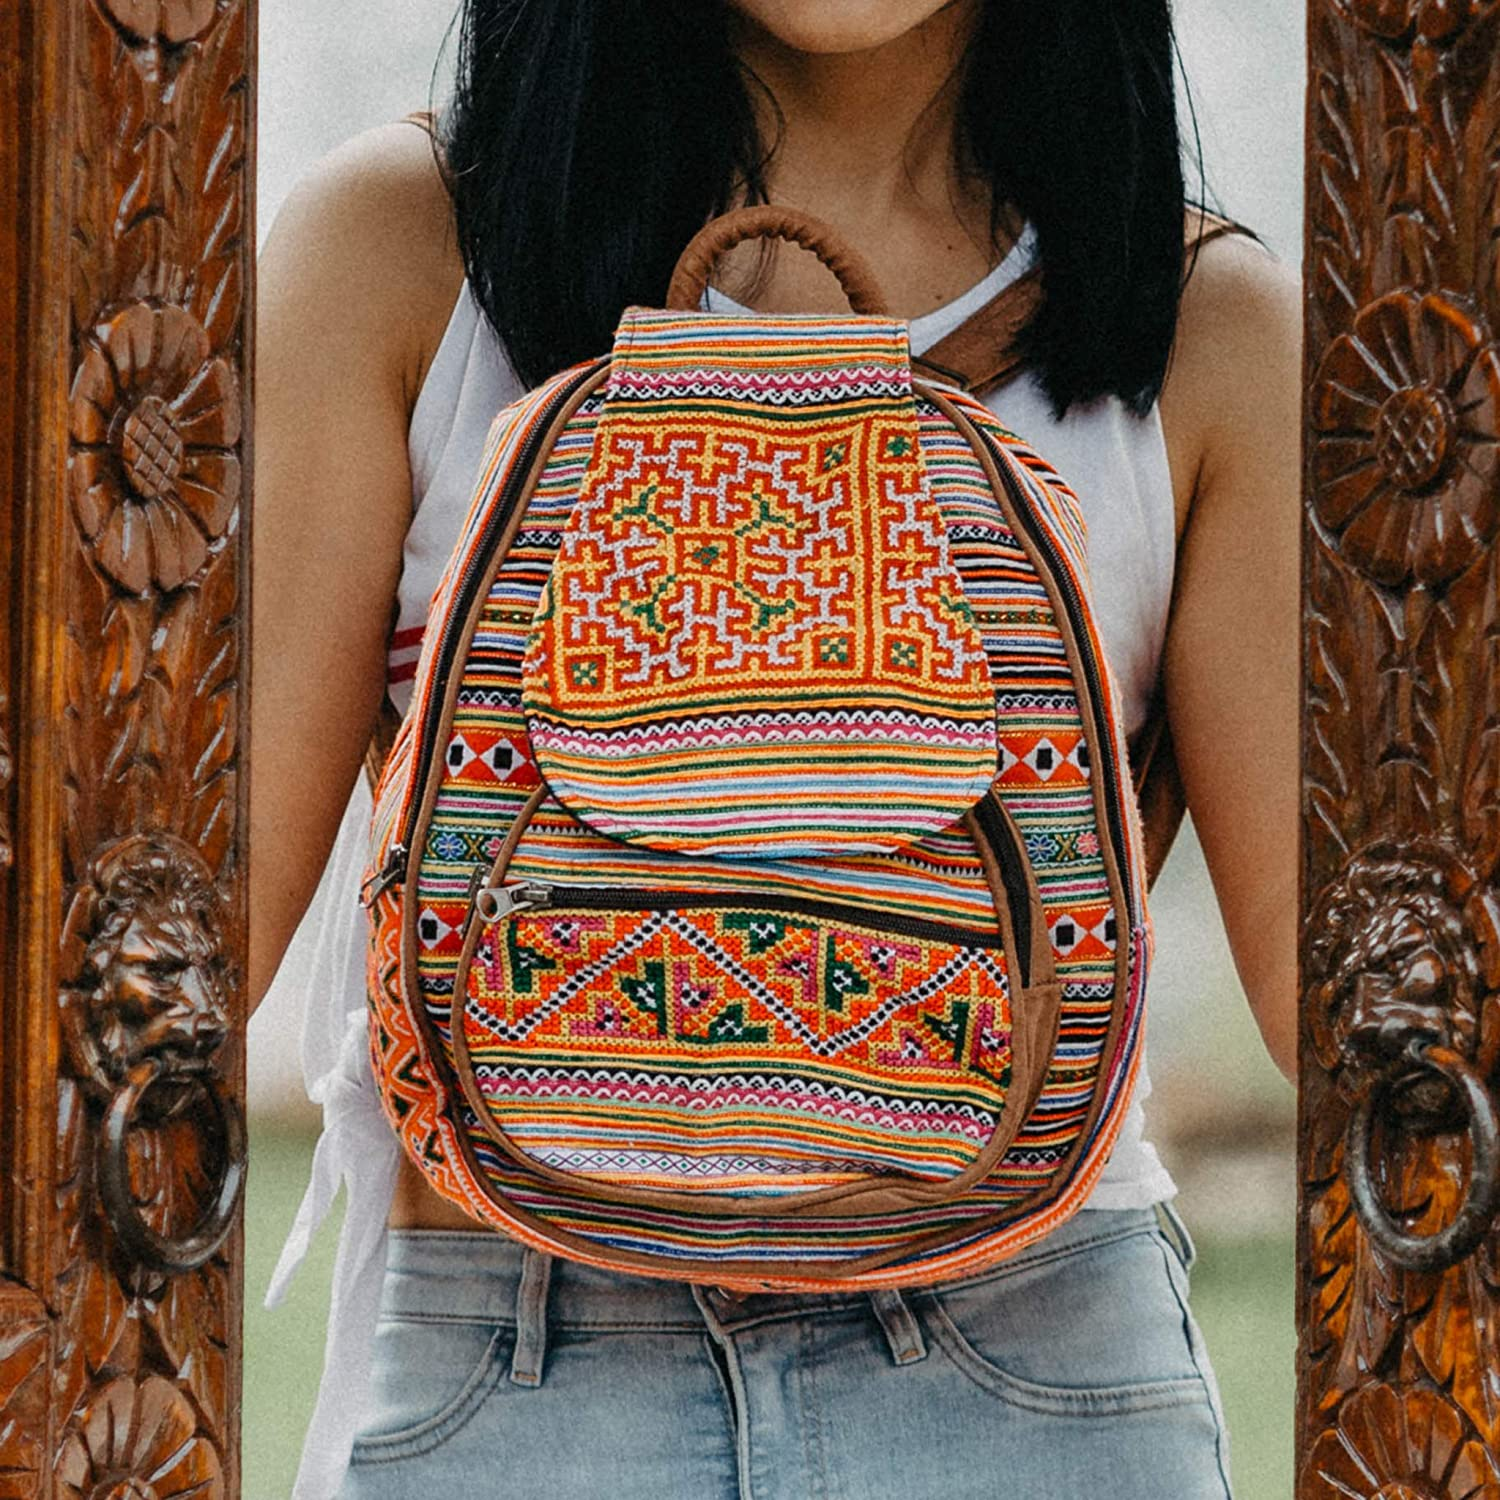 Changnoi Women's Mini Backpack with Hmong Hill Tribe Embroidery, Vintage Backpack, Ethnic Bookbag, One of a Kind Backpack from Thailand